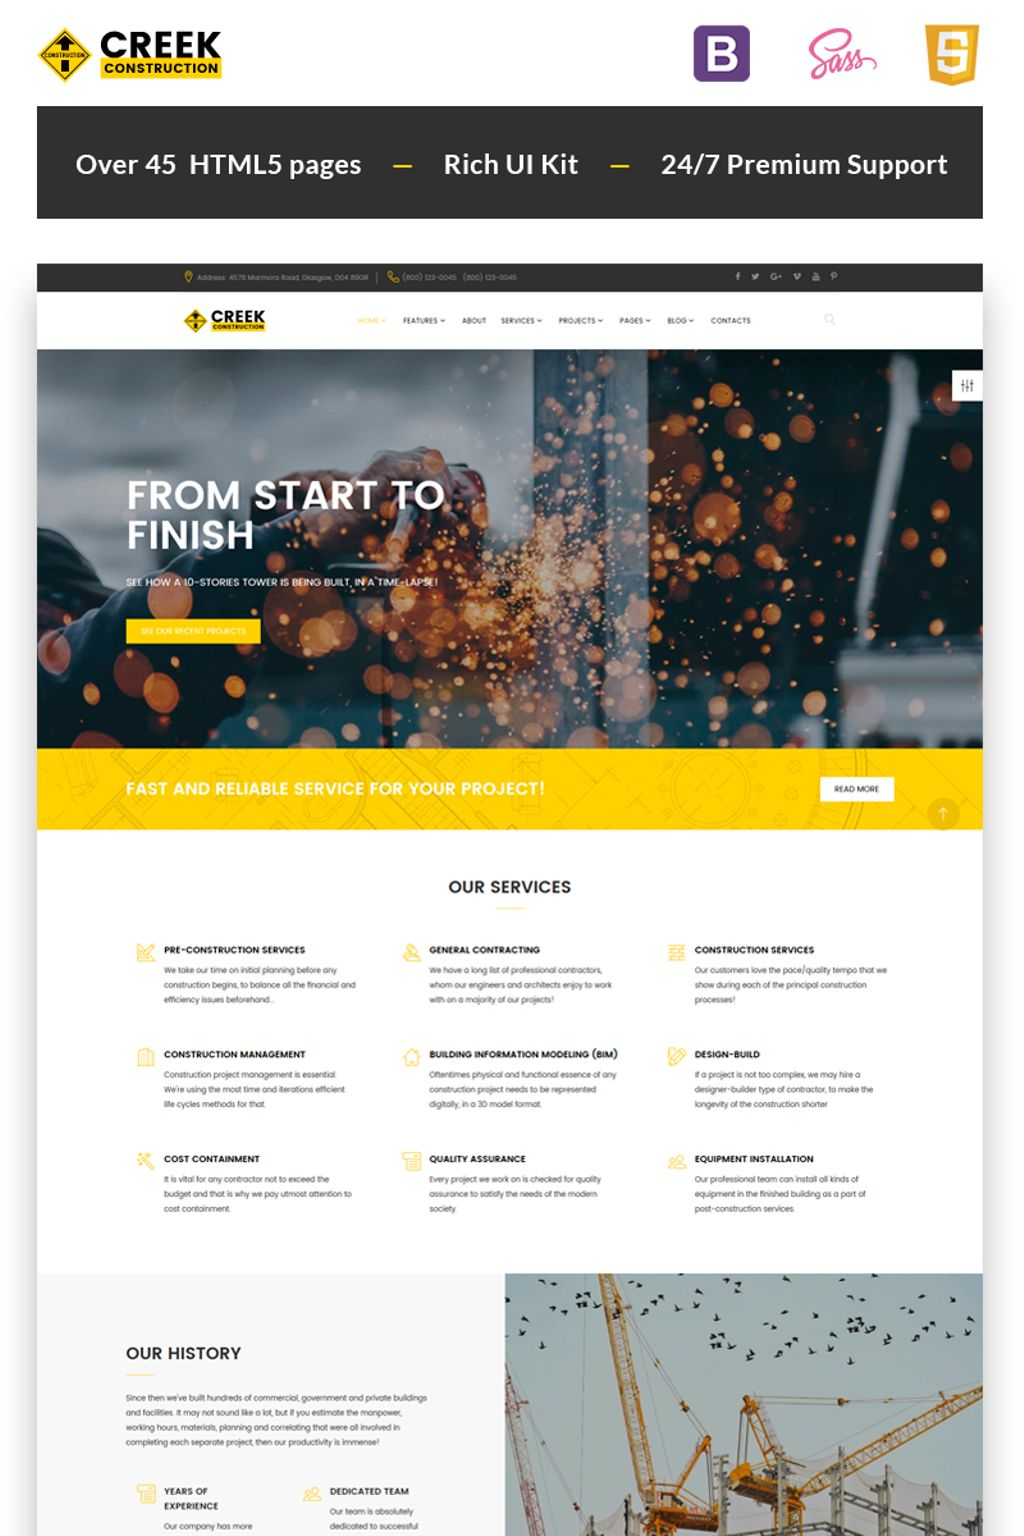 Creek - Construction Company HTML5 Website Template